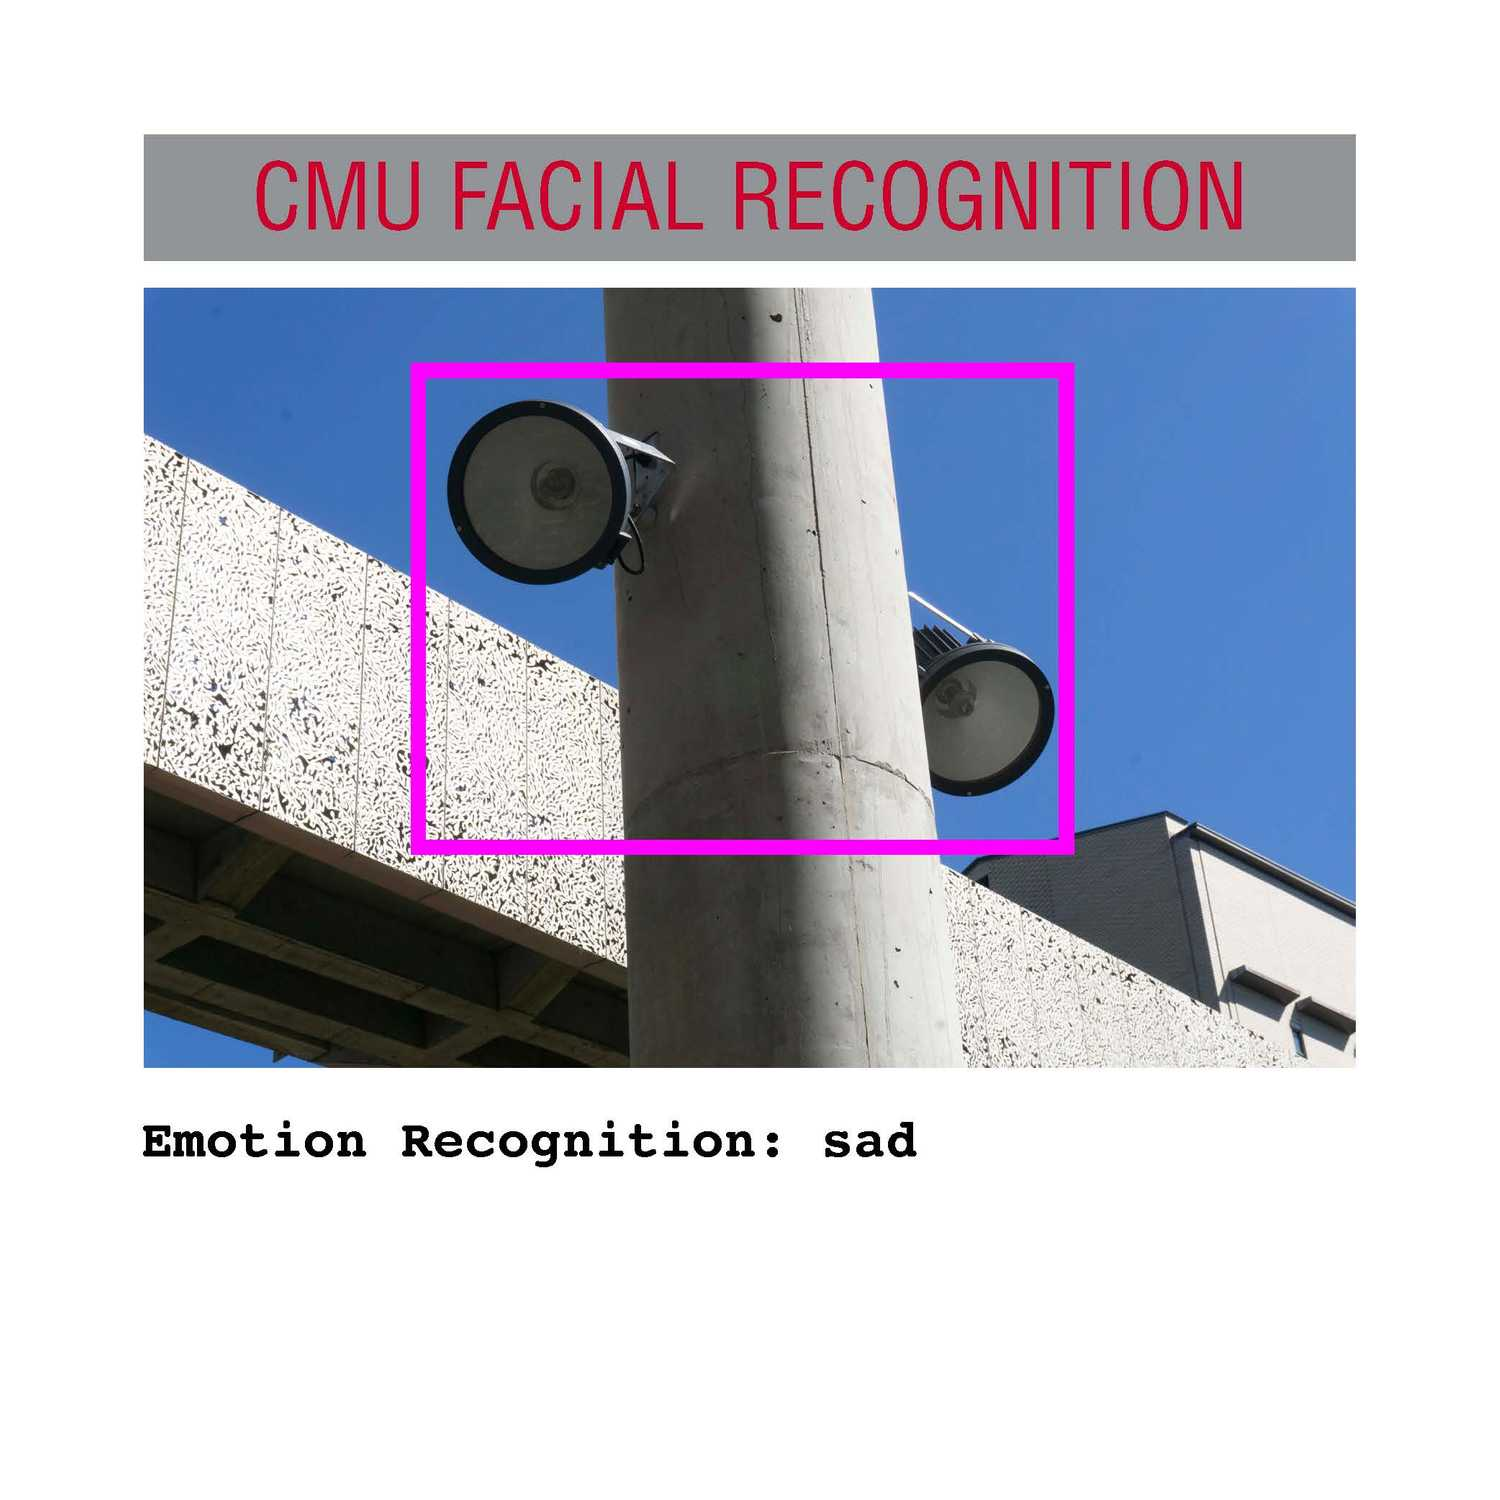 facial recognition Page 04